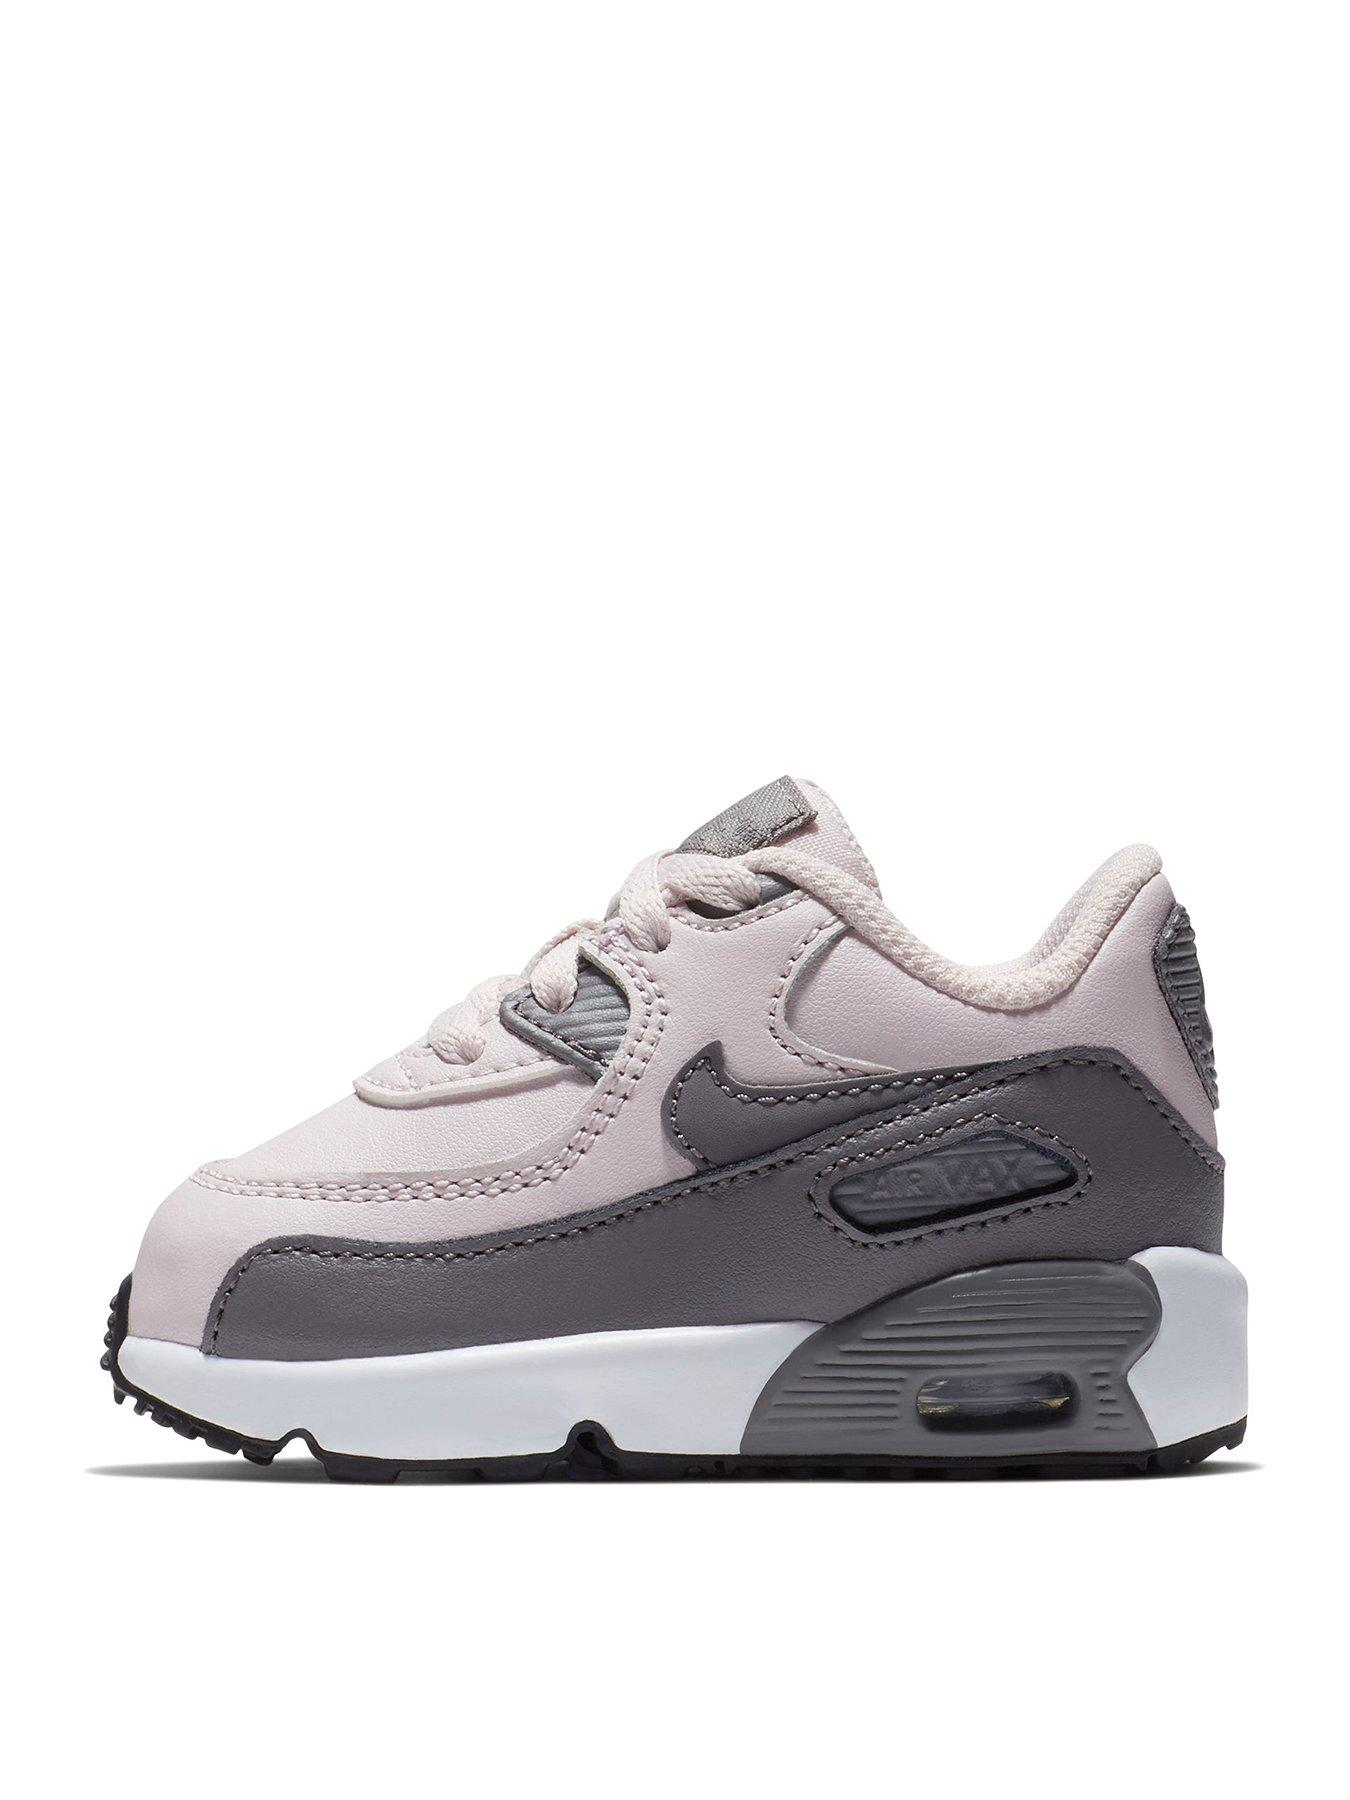 nike air max 90 white shopkins